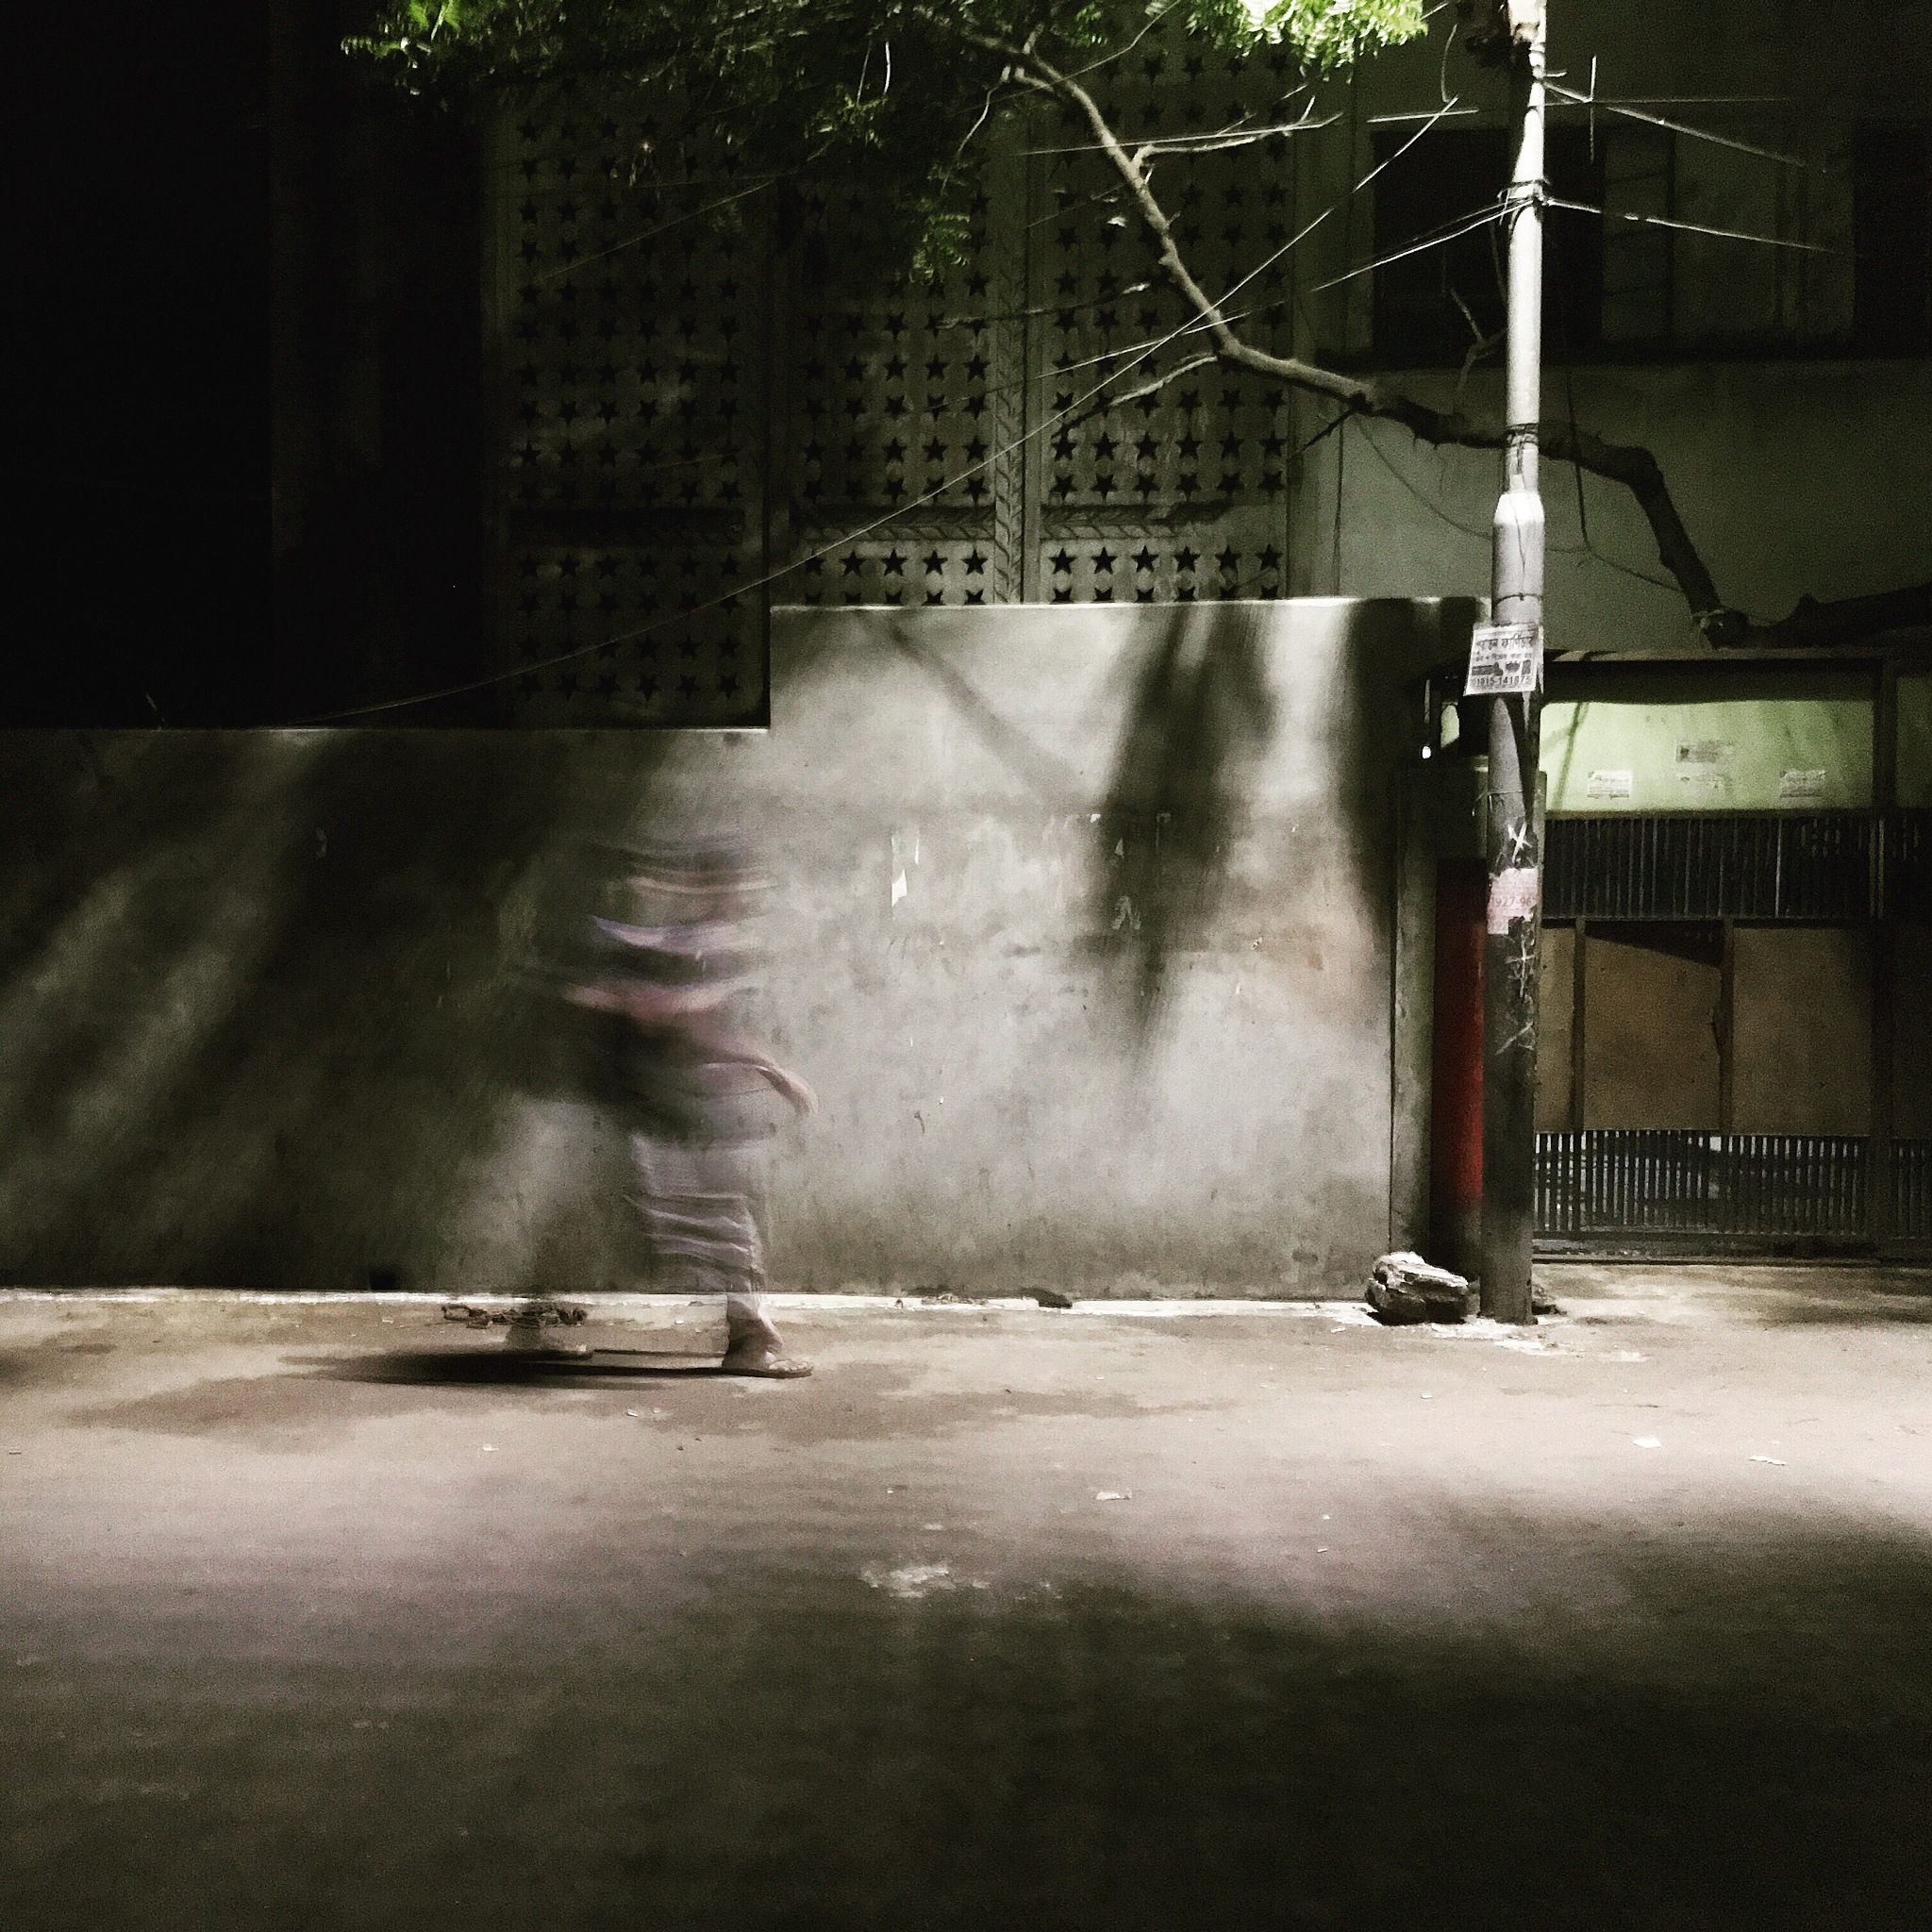 Shadow Of Life by Mehedi Hassan Shaon